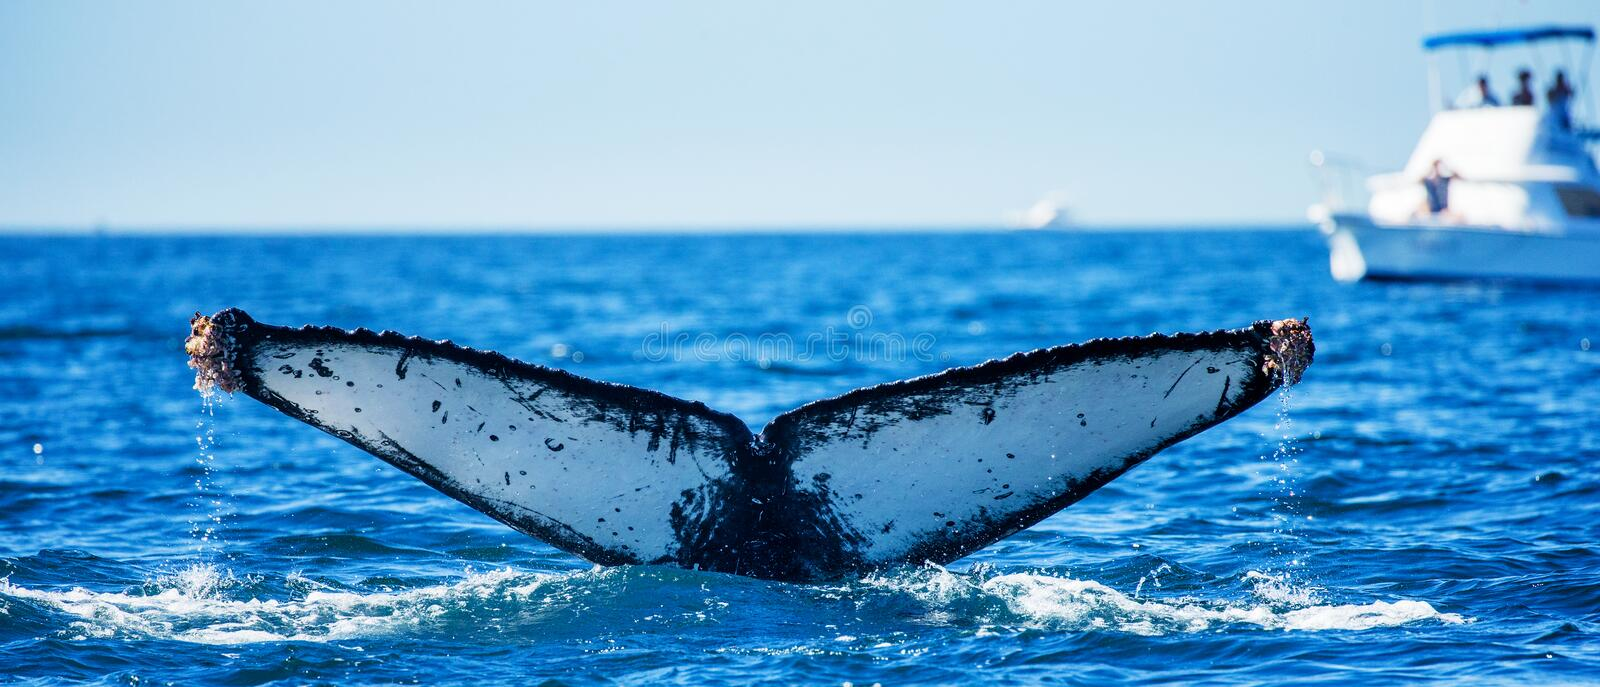 Tail of the humpback whale. Mexico. Sea of Cortez. California Peninsula . An excellent illustration stock photos